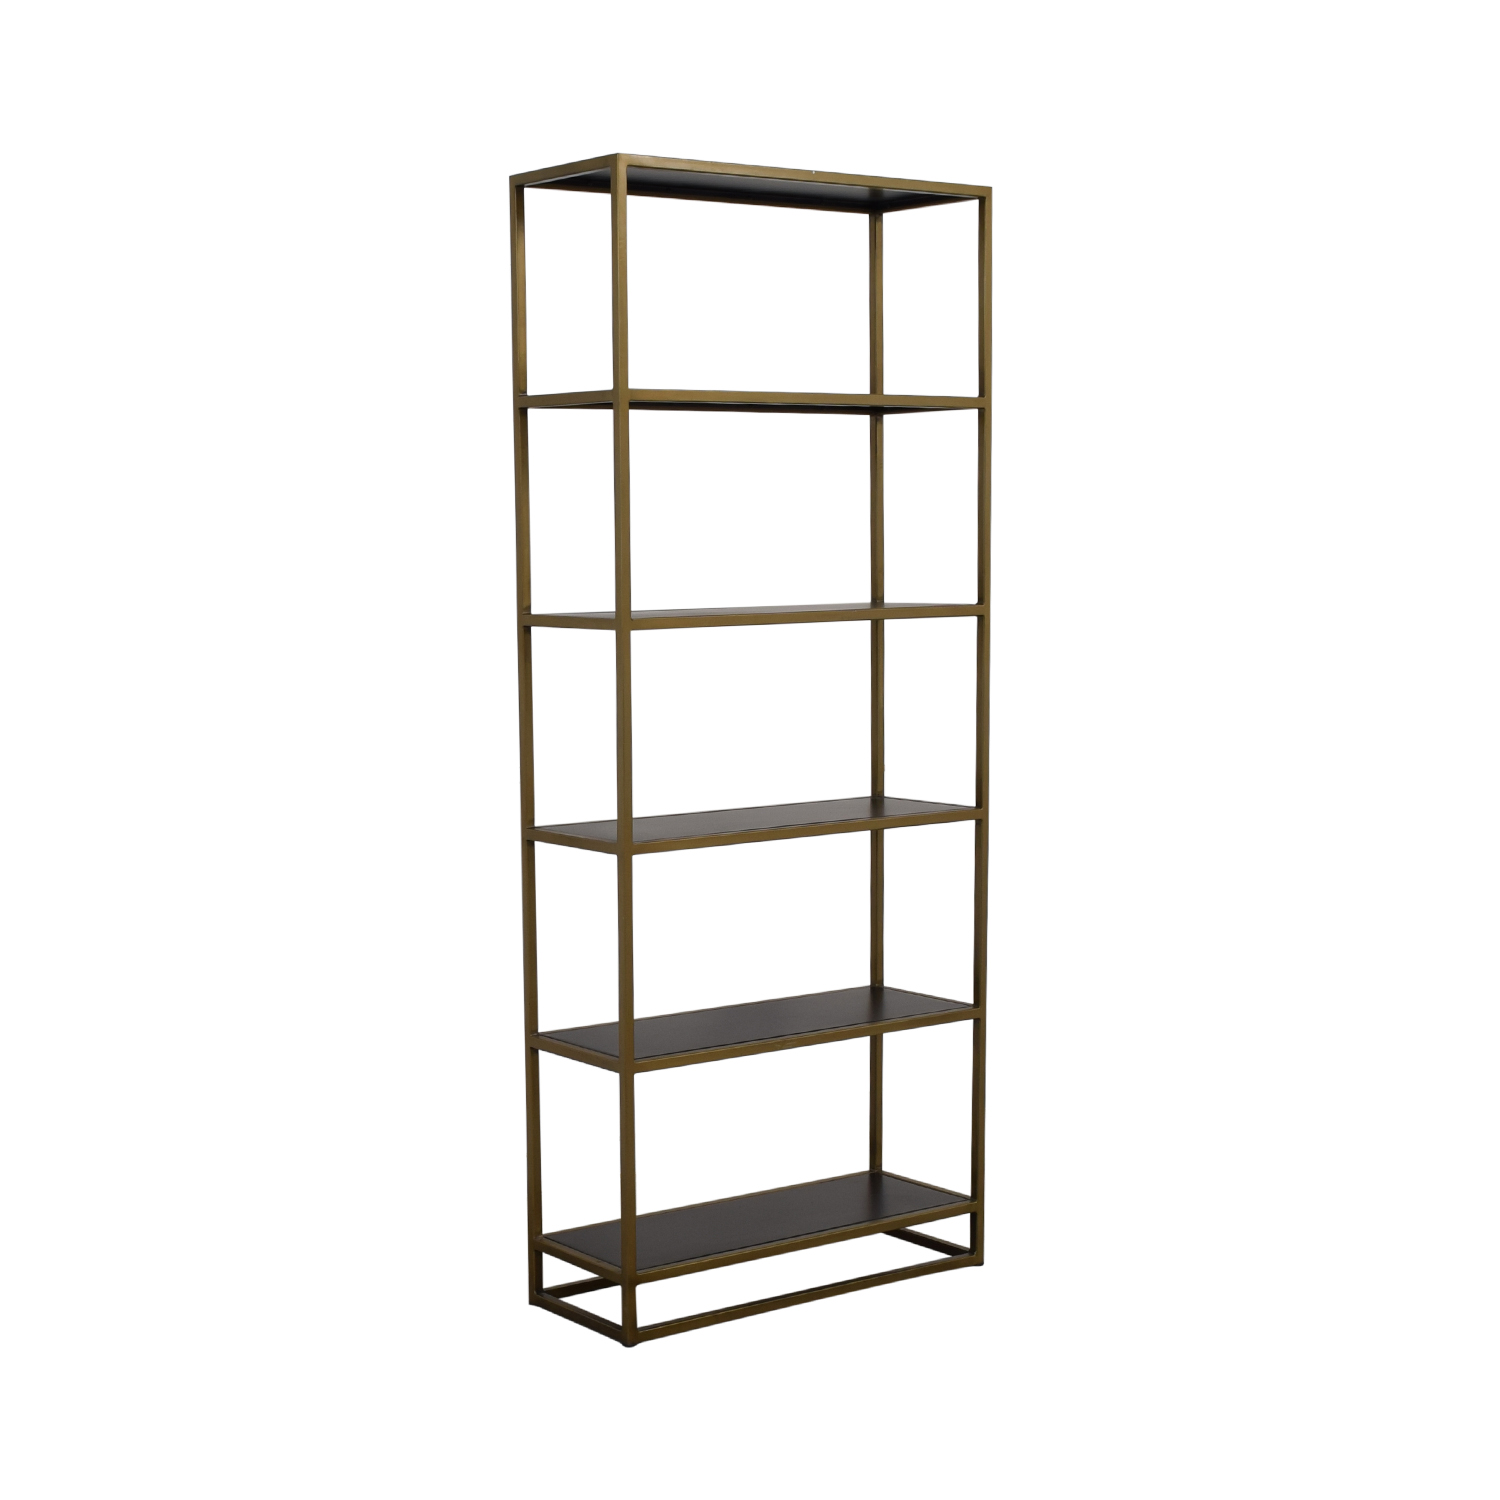 Crate & Barrel Crate & Barrel Brass Bookshelf on sale